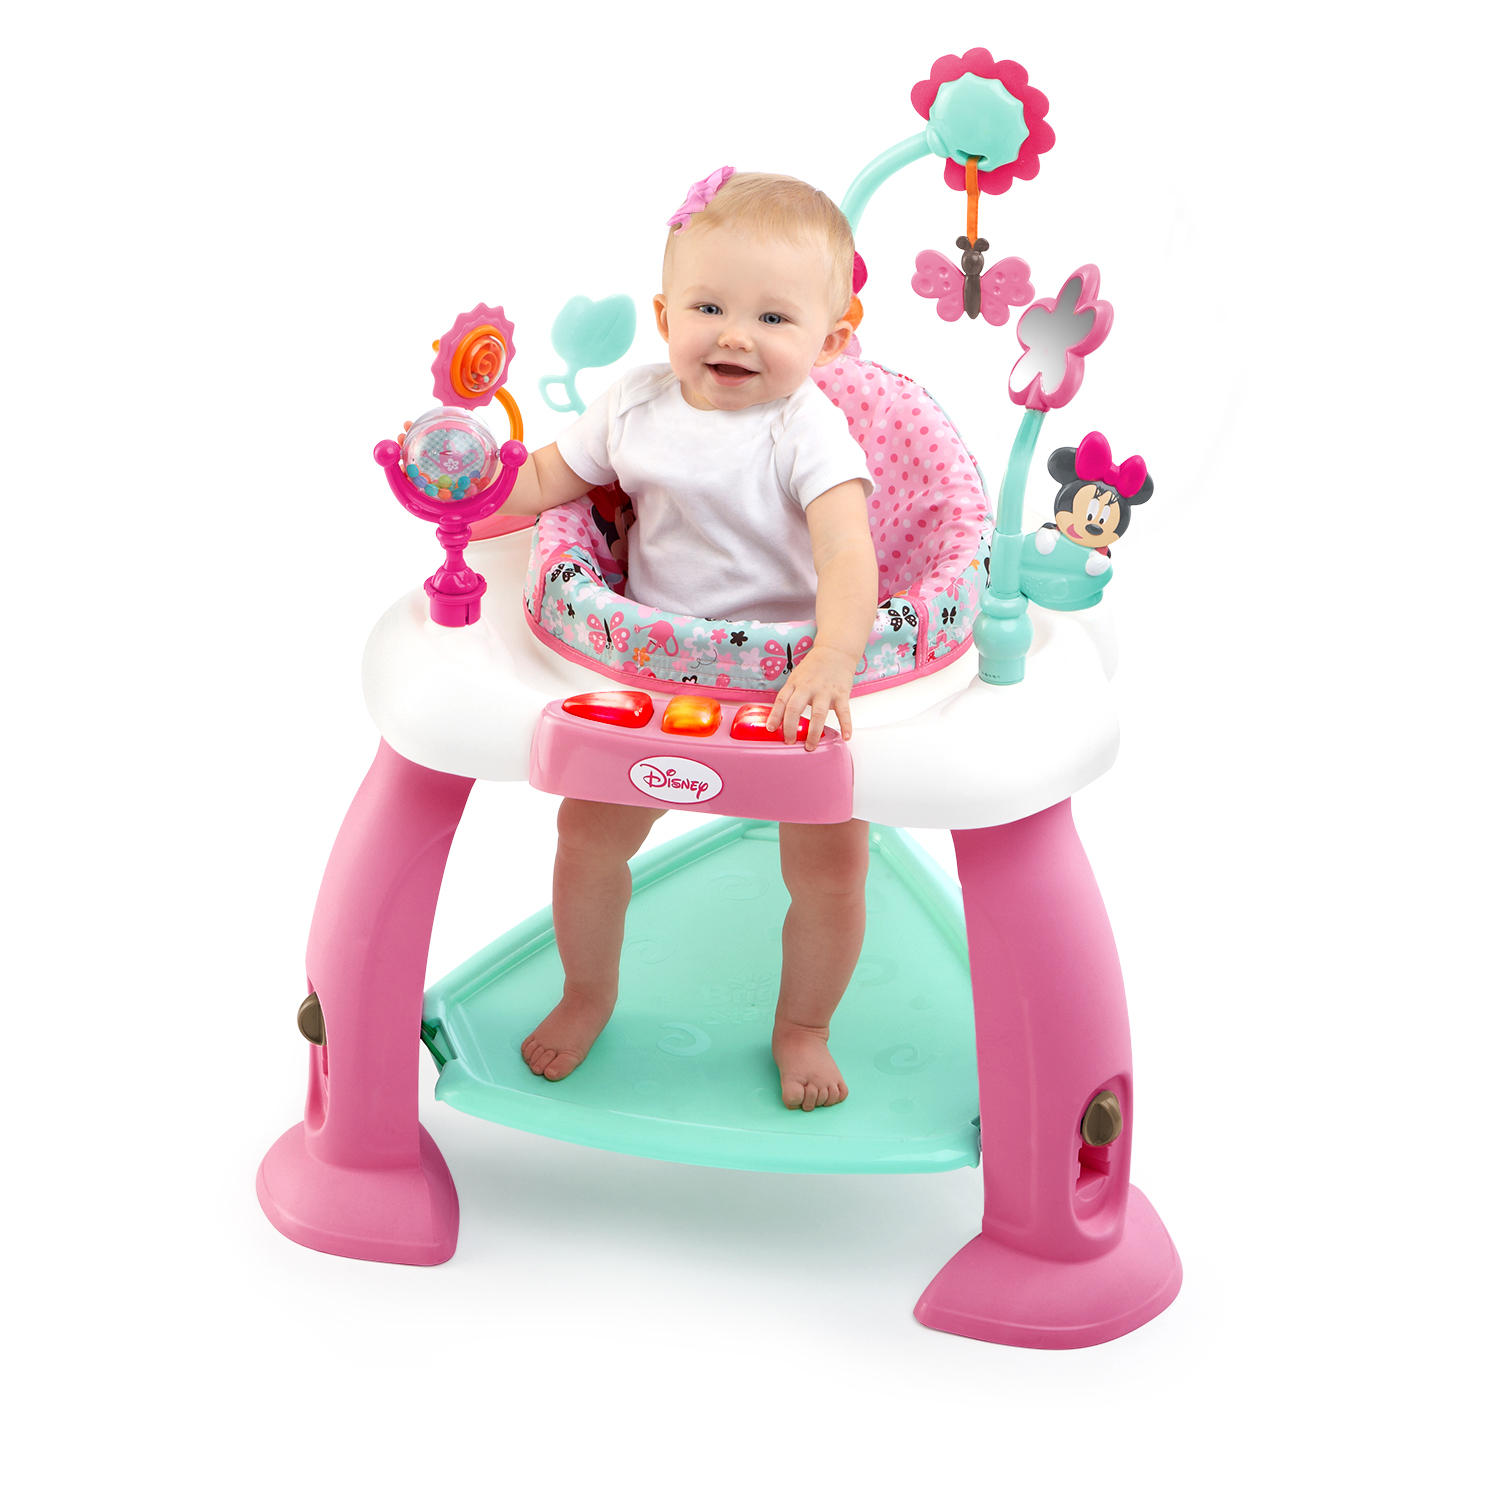 Disney Baby MINNIE MOUSE Premier Bounce & Bloom™ Activity Jumper from Bright Starts™